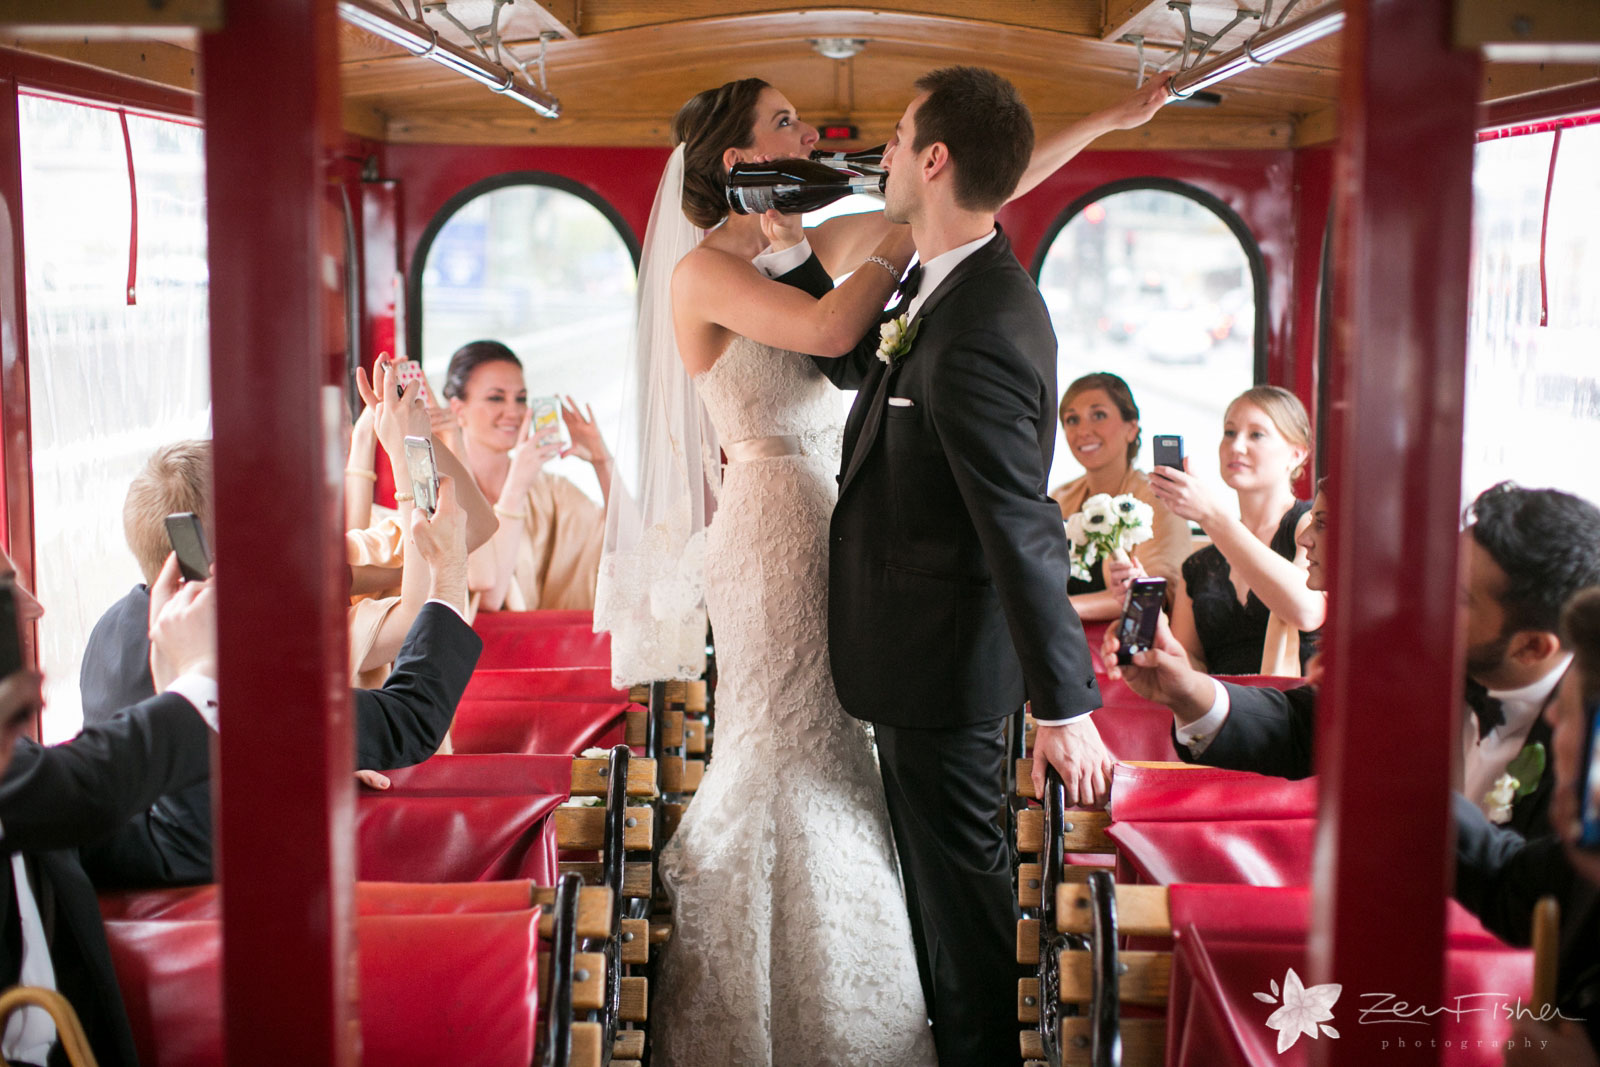 Silly bride and groom stand in the aisle of the party trolley and chug from champagne bottles.